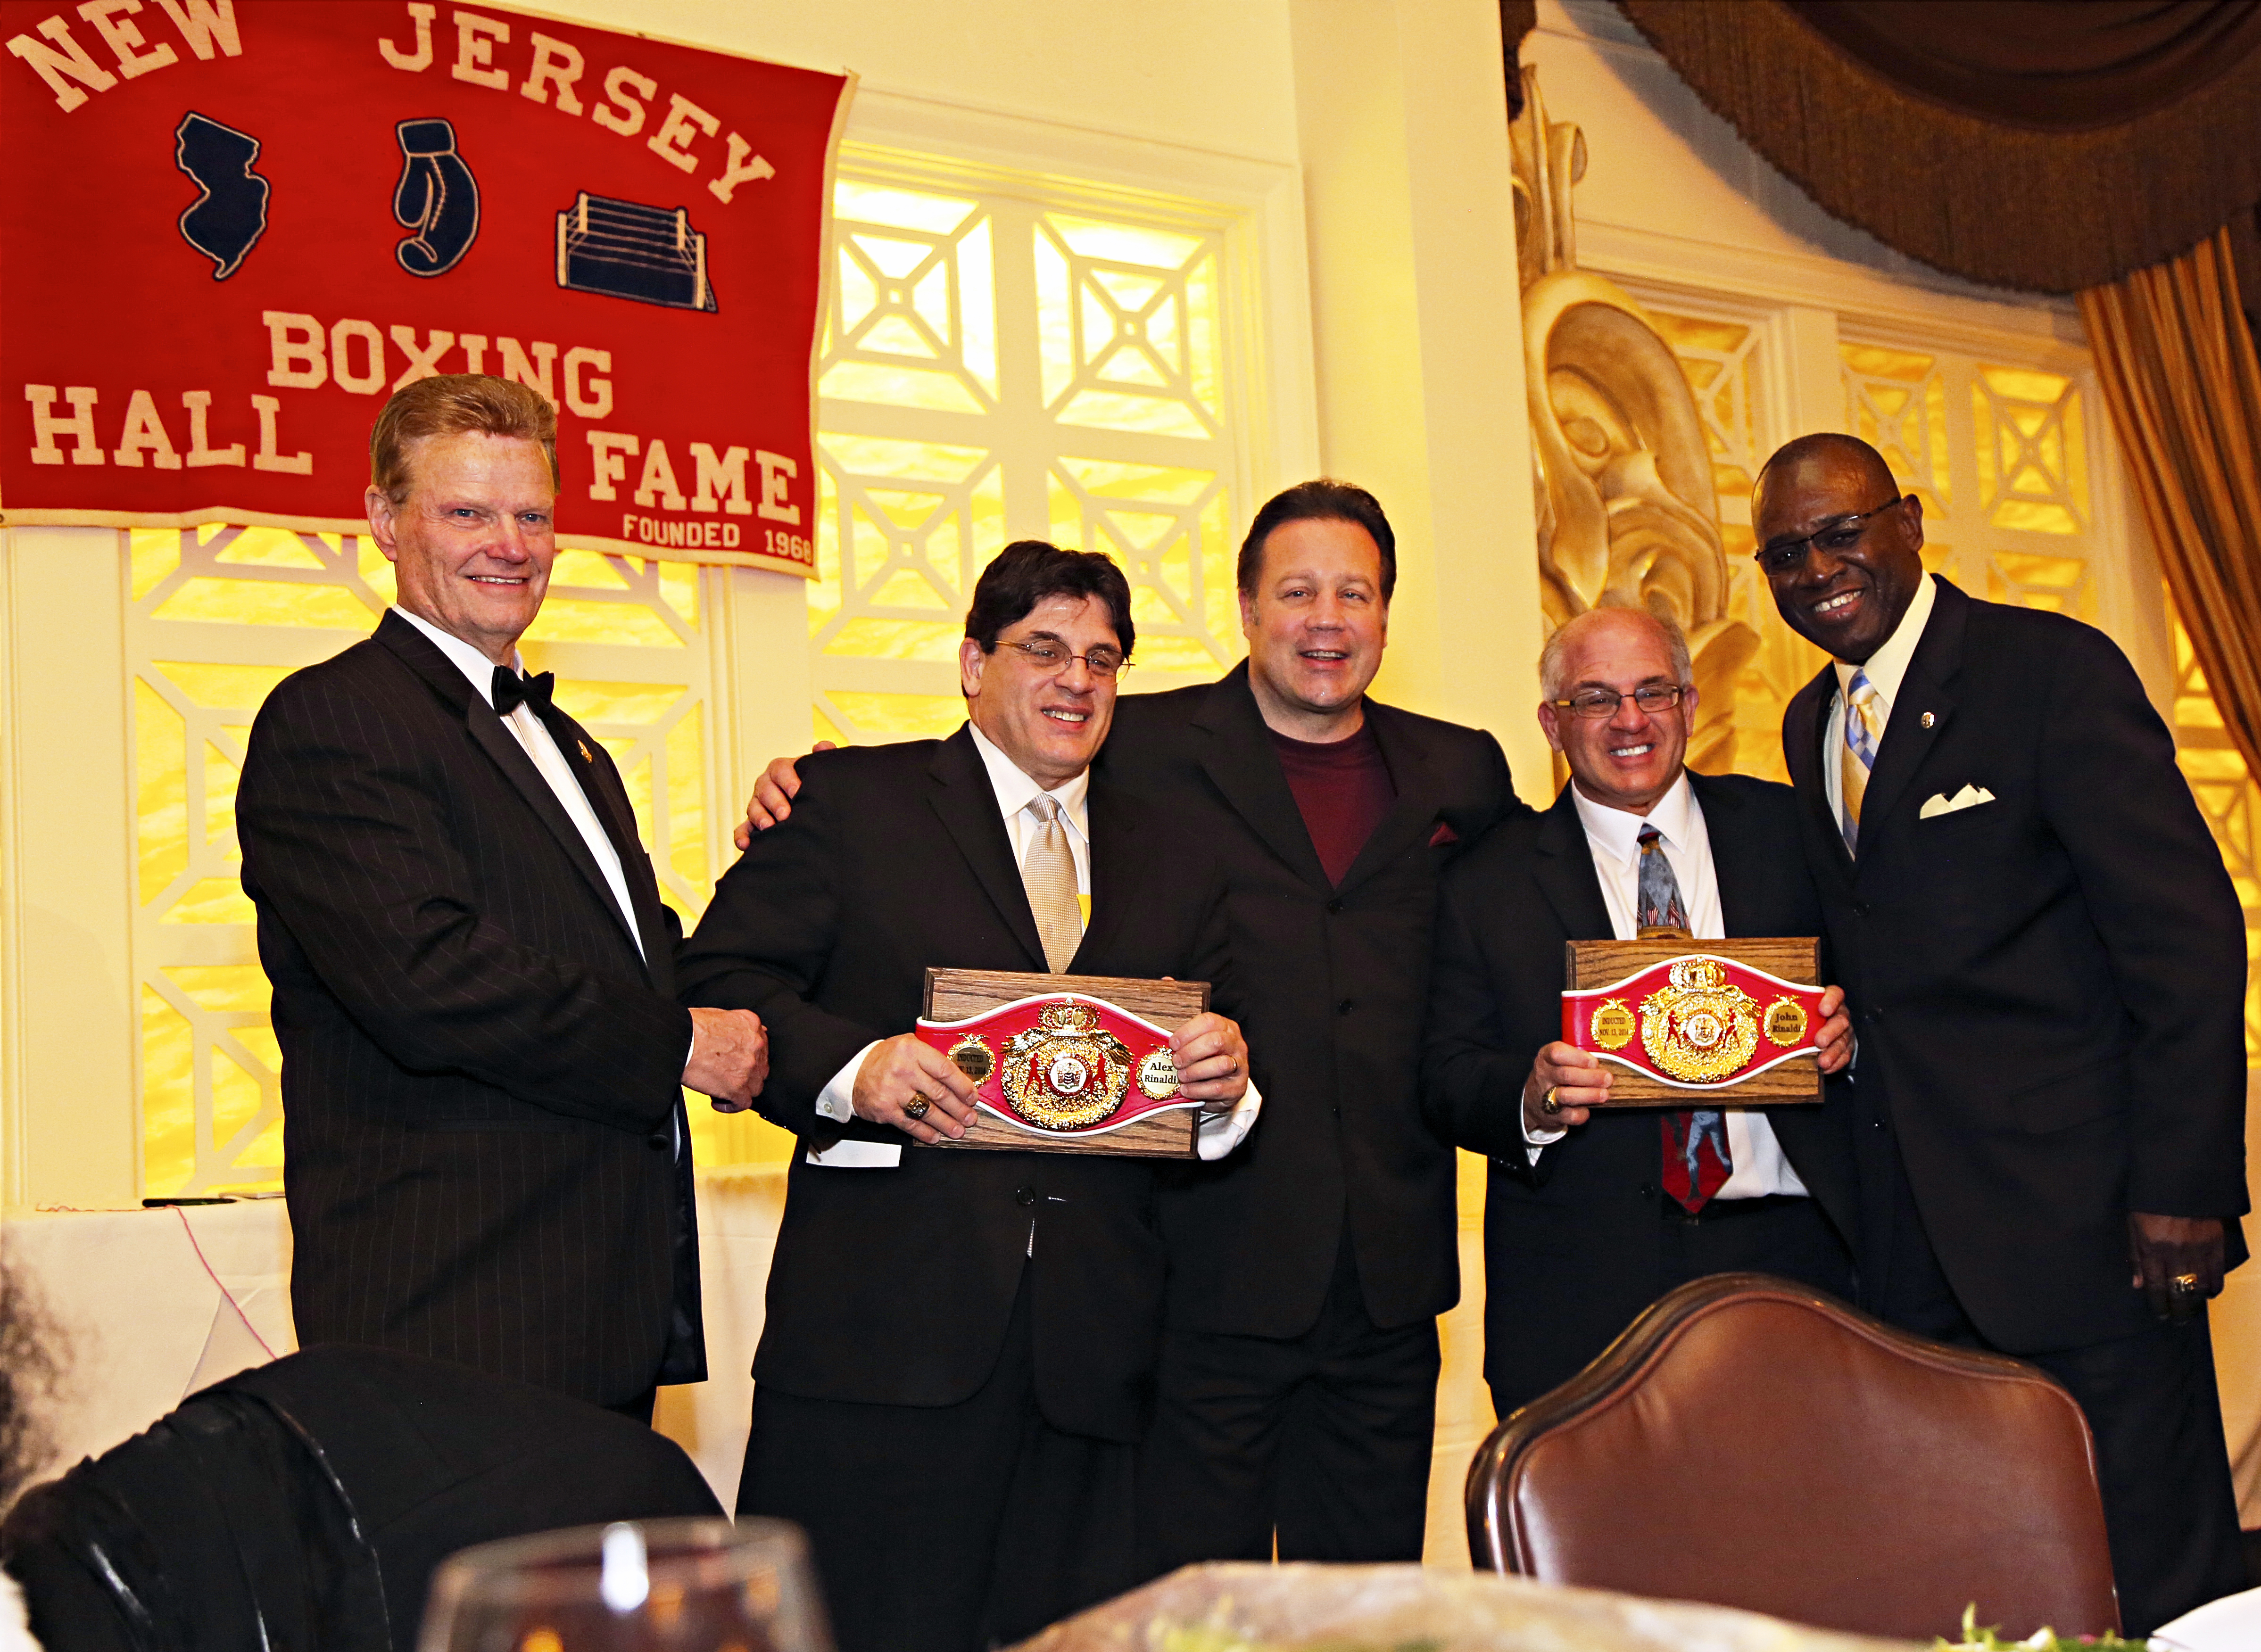 NJ Boxing Hall of Fame President Henry Hascup with Hall of Famers Alex and John Rinaldi along with two-time Champion Bobby Czyz and NJ Boxing Commissioner Larry Hazzard